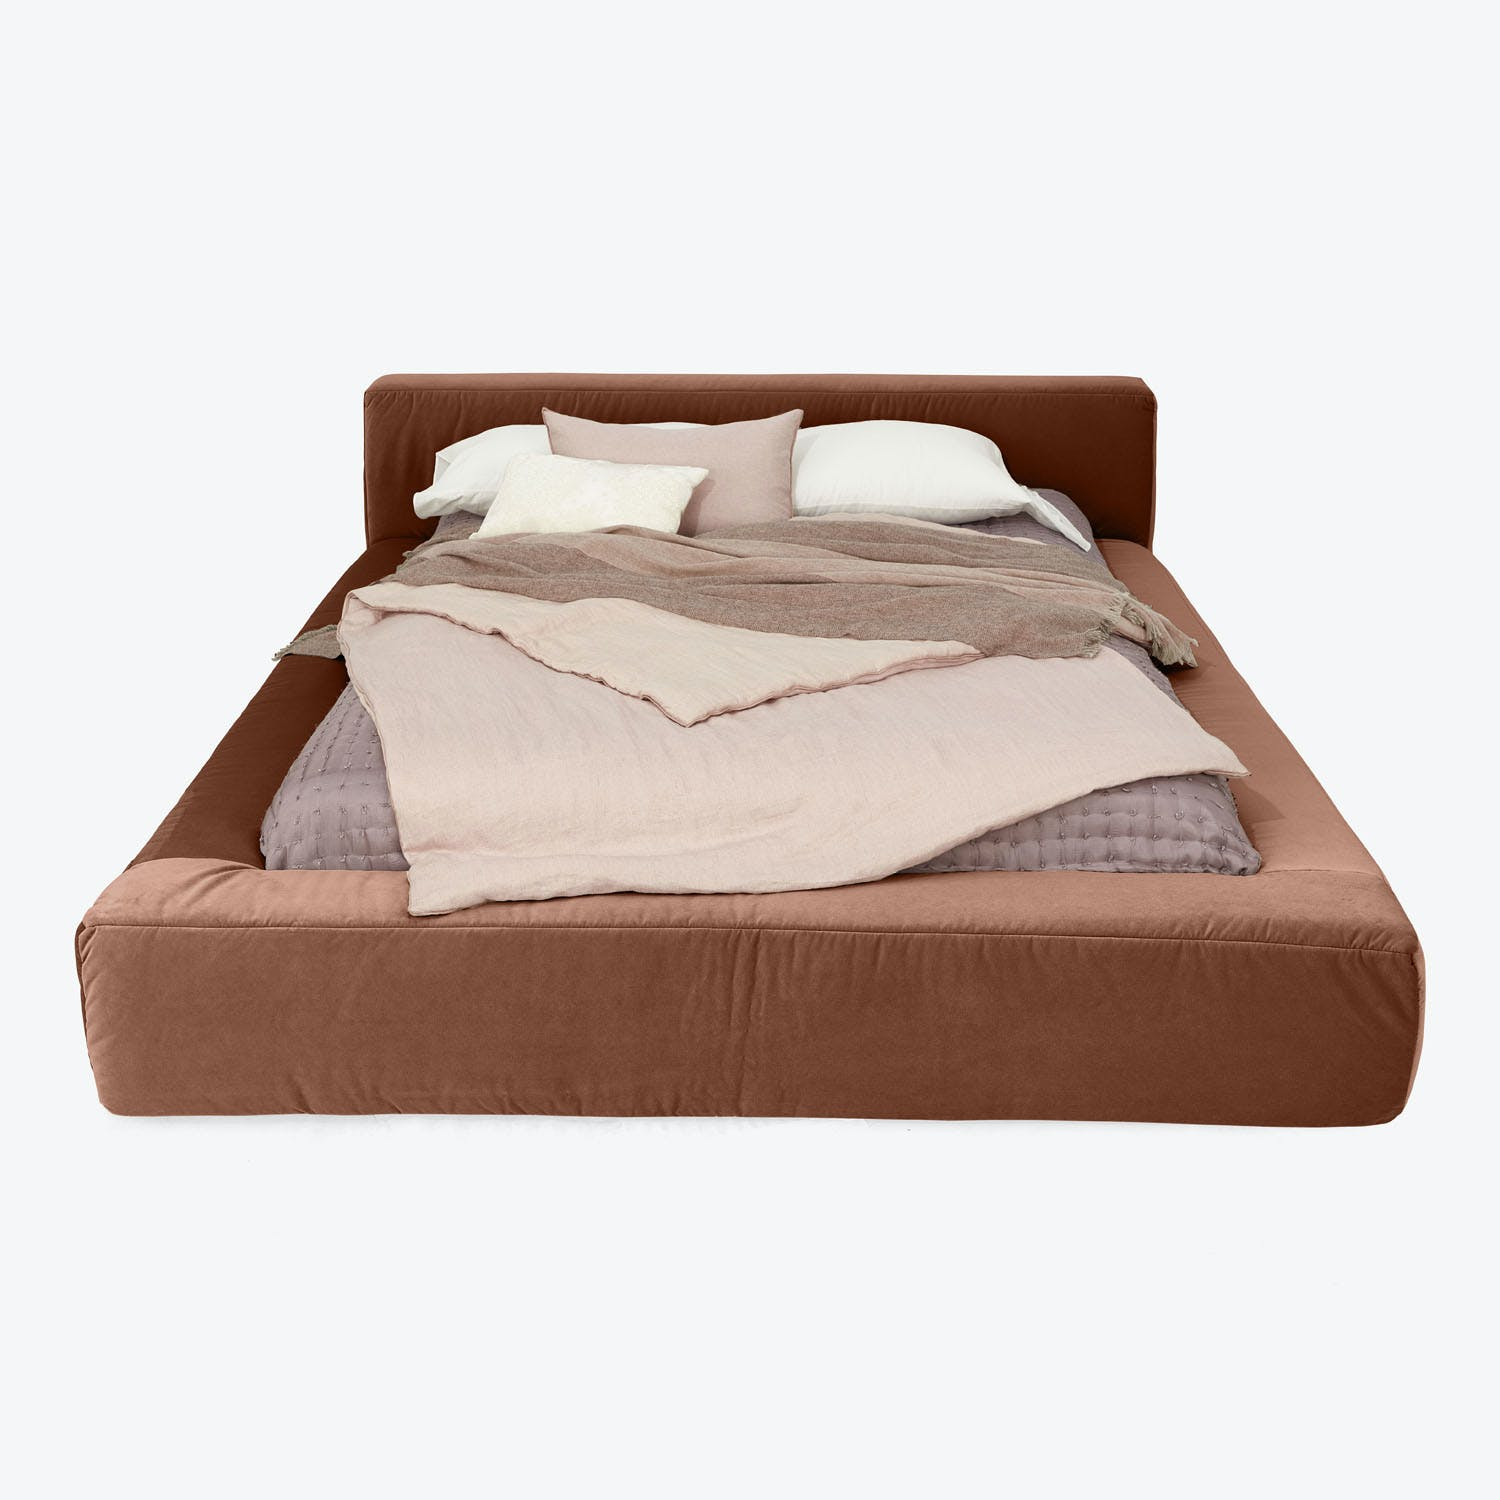 Product Image - Amelia Upholstered Queen Bed